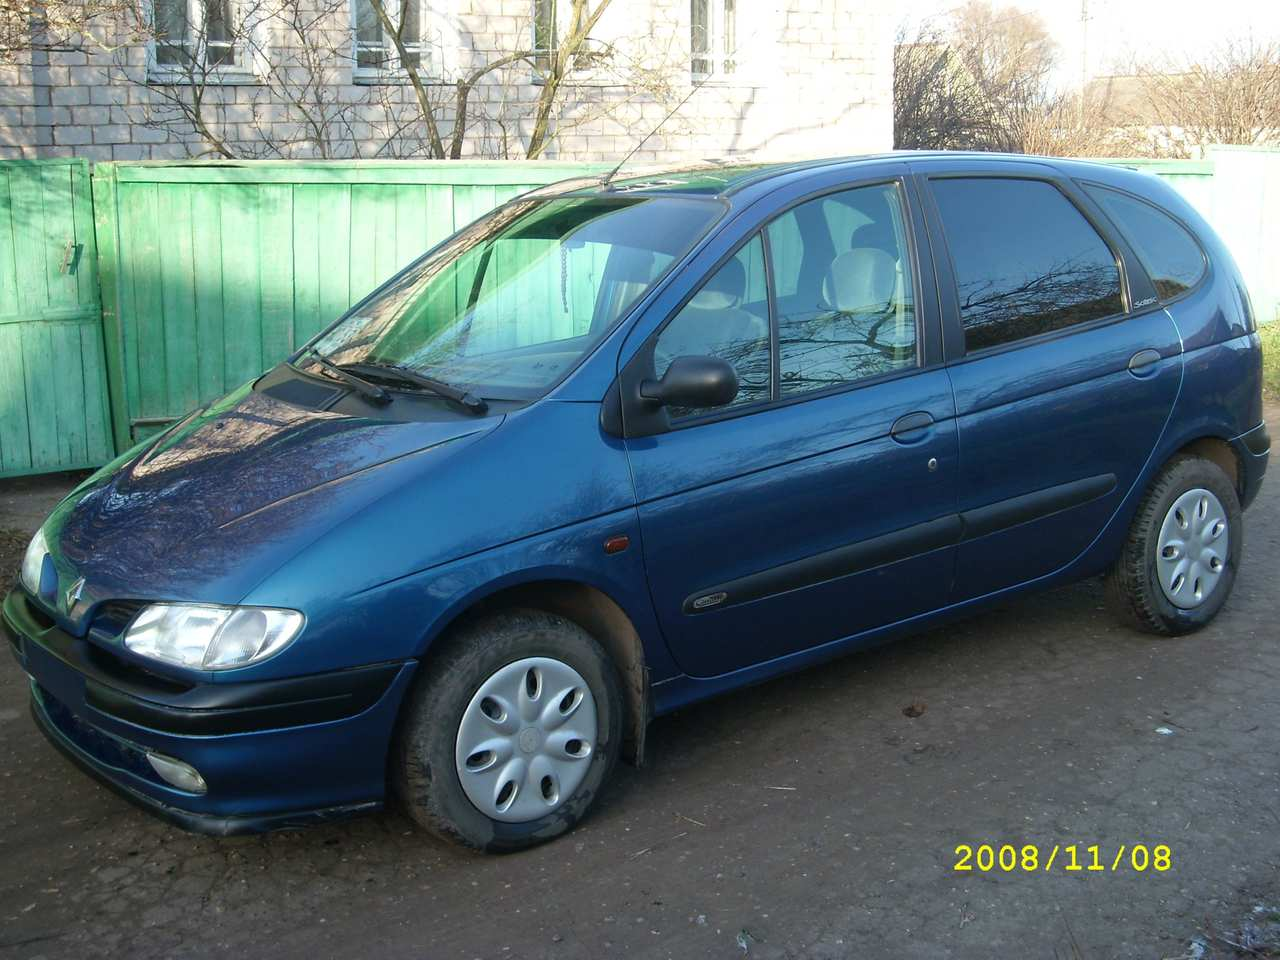 Renault scenic a1241771414b2675862 orig furthermore 32045 Mitsubishi L200 Review in addition 31560 Peugeot 308 Sw also 8 Things I Learned At The Retro Car Expo In Paris besides Volvo S60 inscription. on towing cars for sale